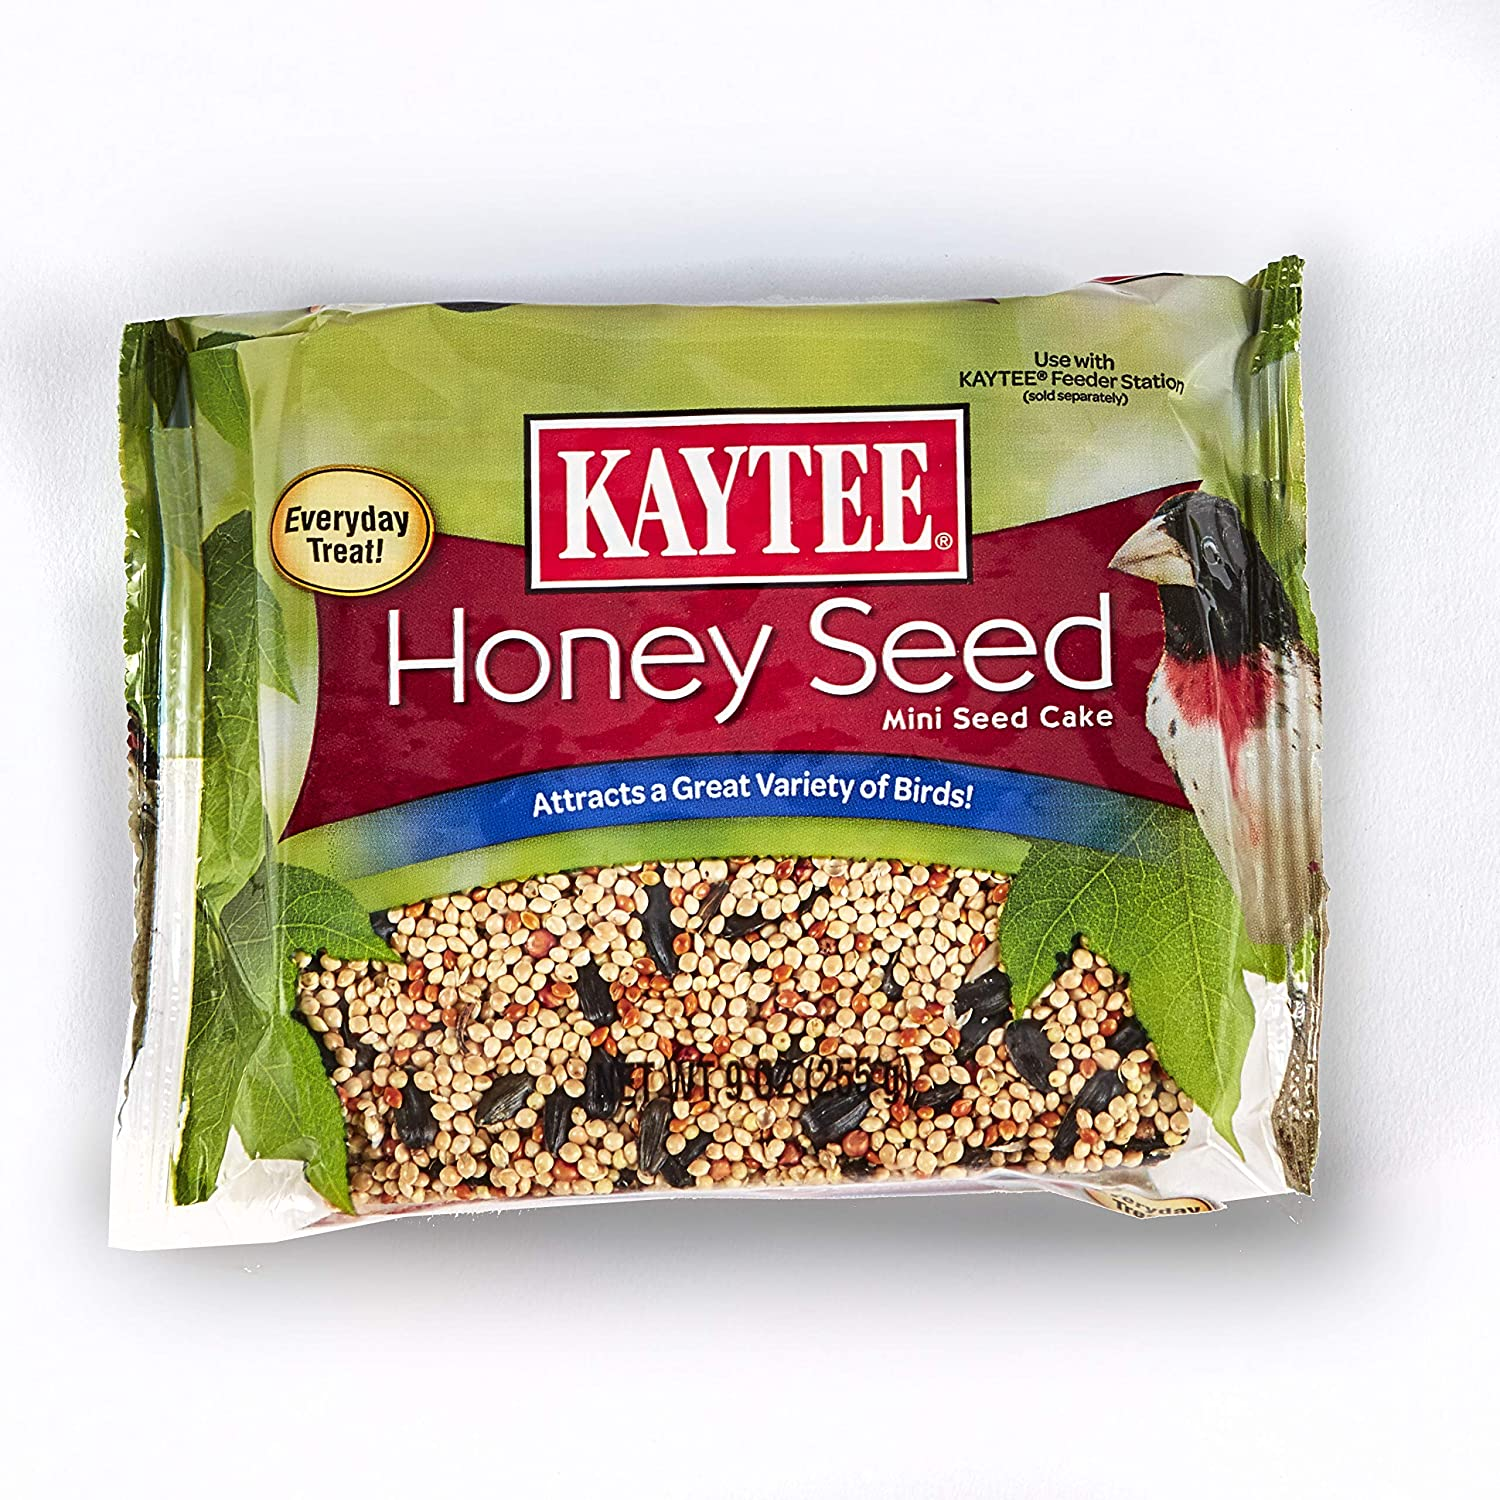 Kaytee Honey Mixed Seed Mini Cake, 9-Ounce